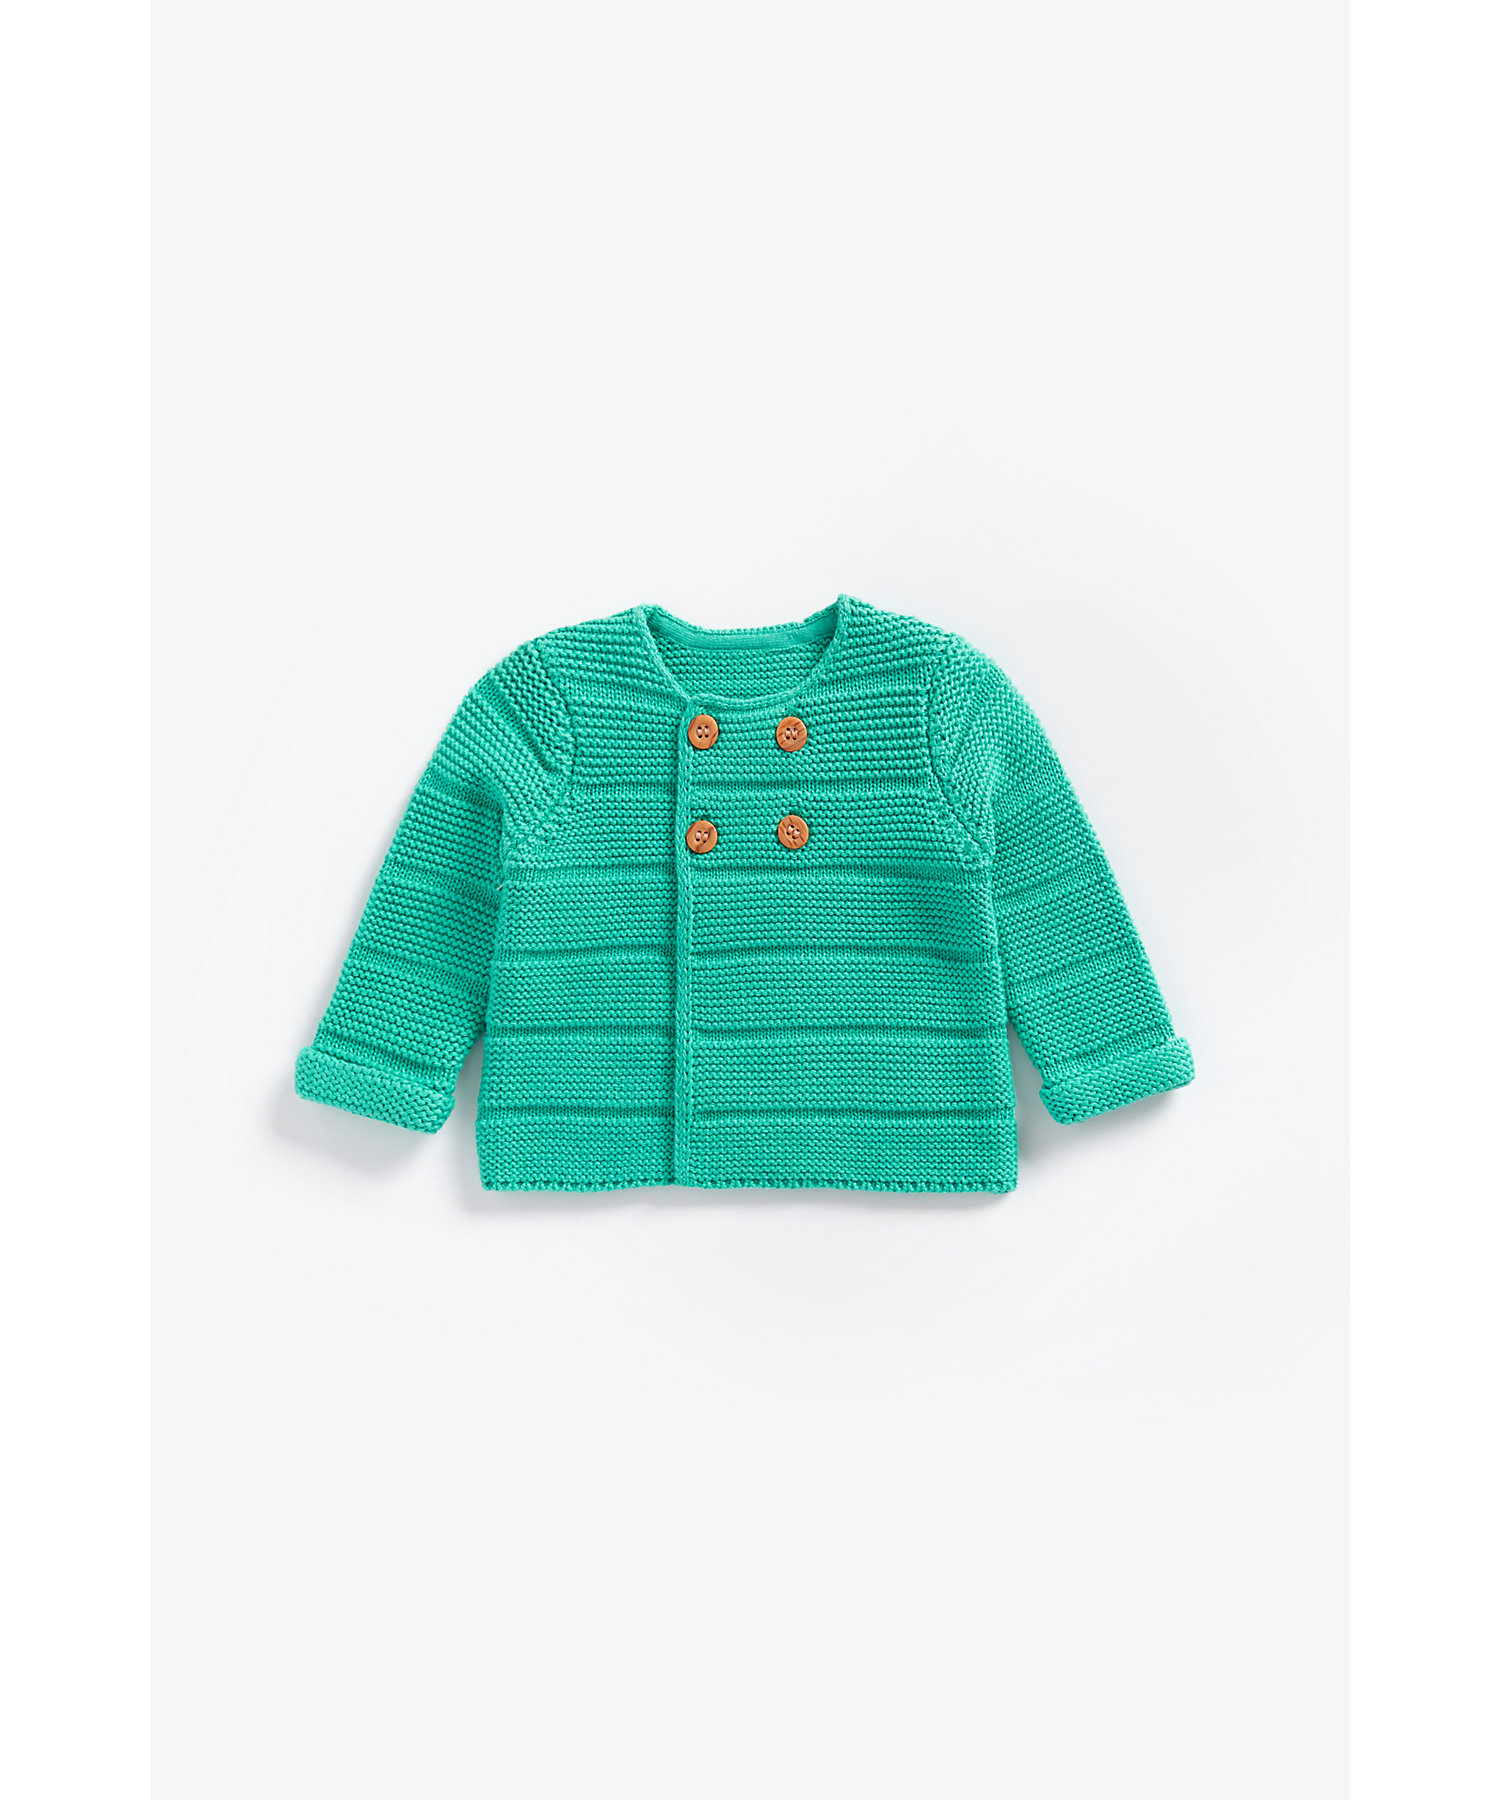 Mothercare | Boys Full Sleeves Cardigan With Button Fastening - Green